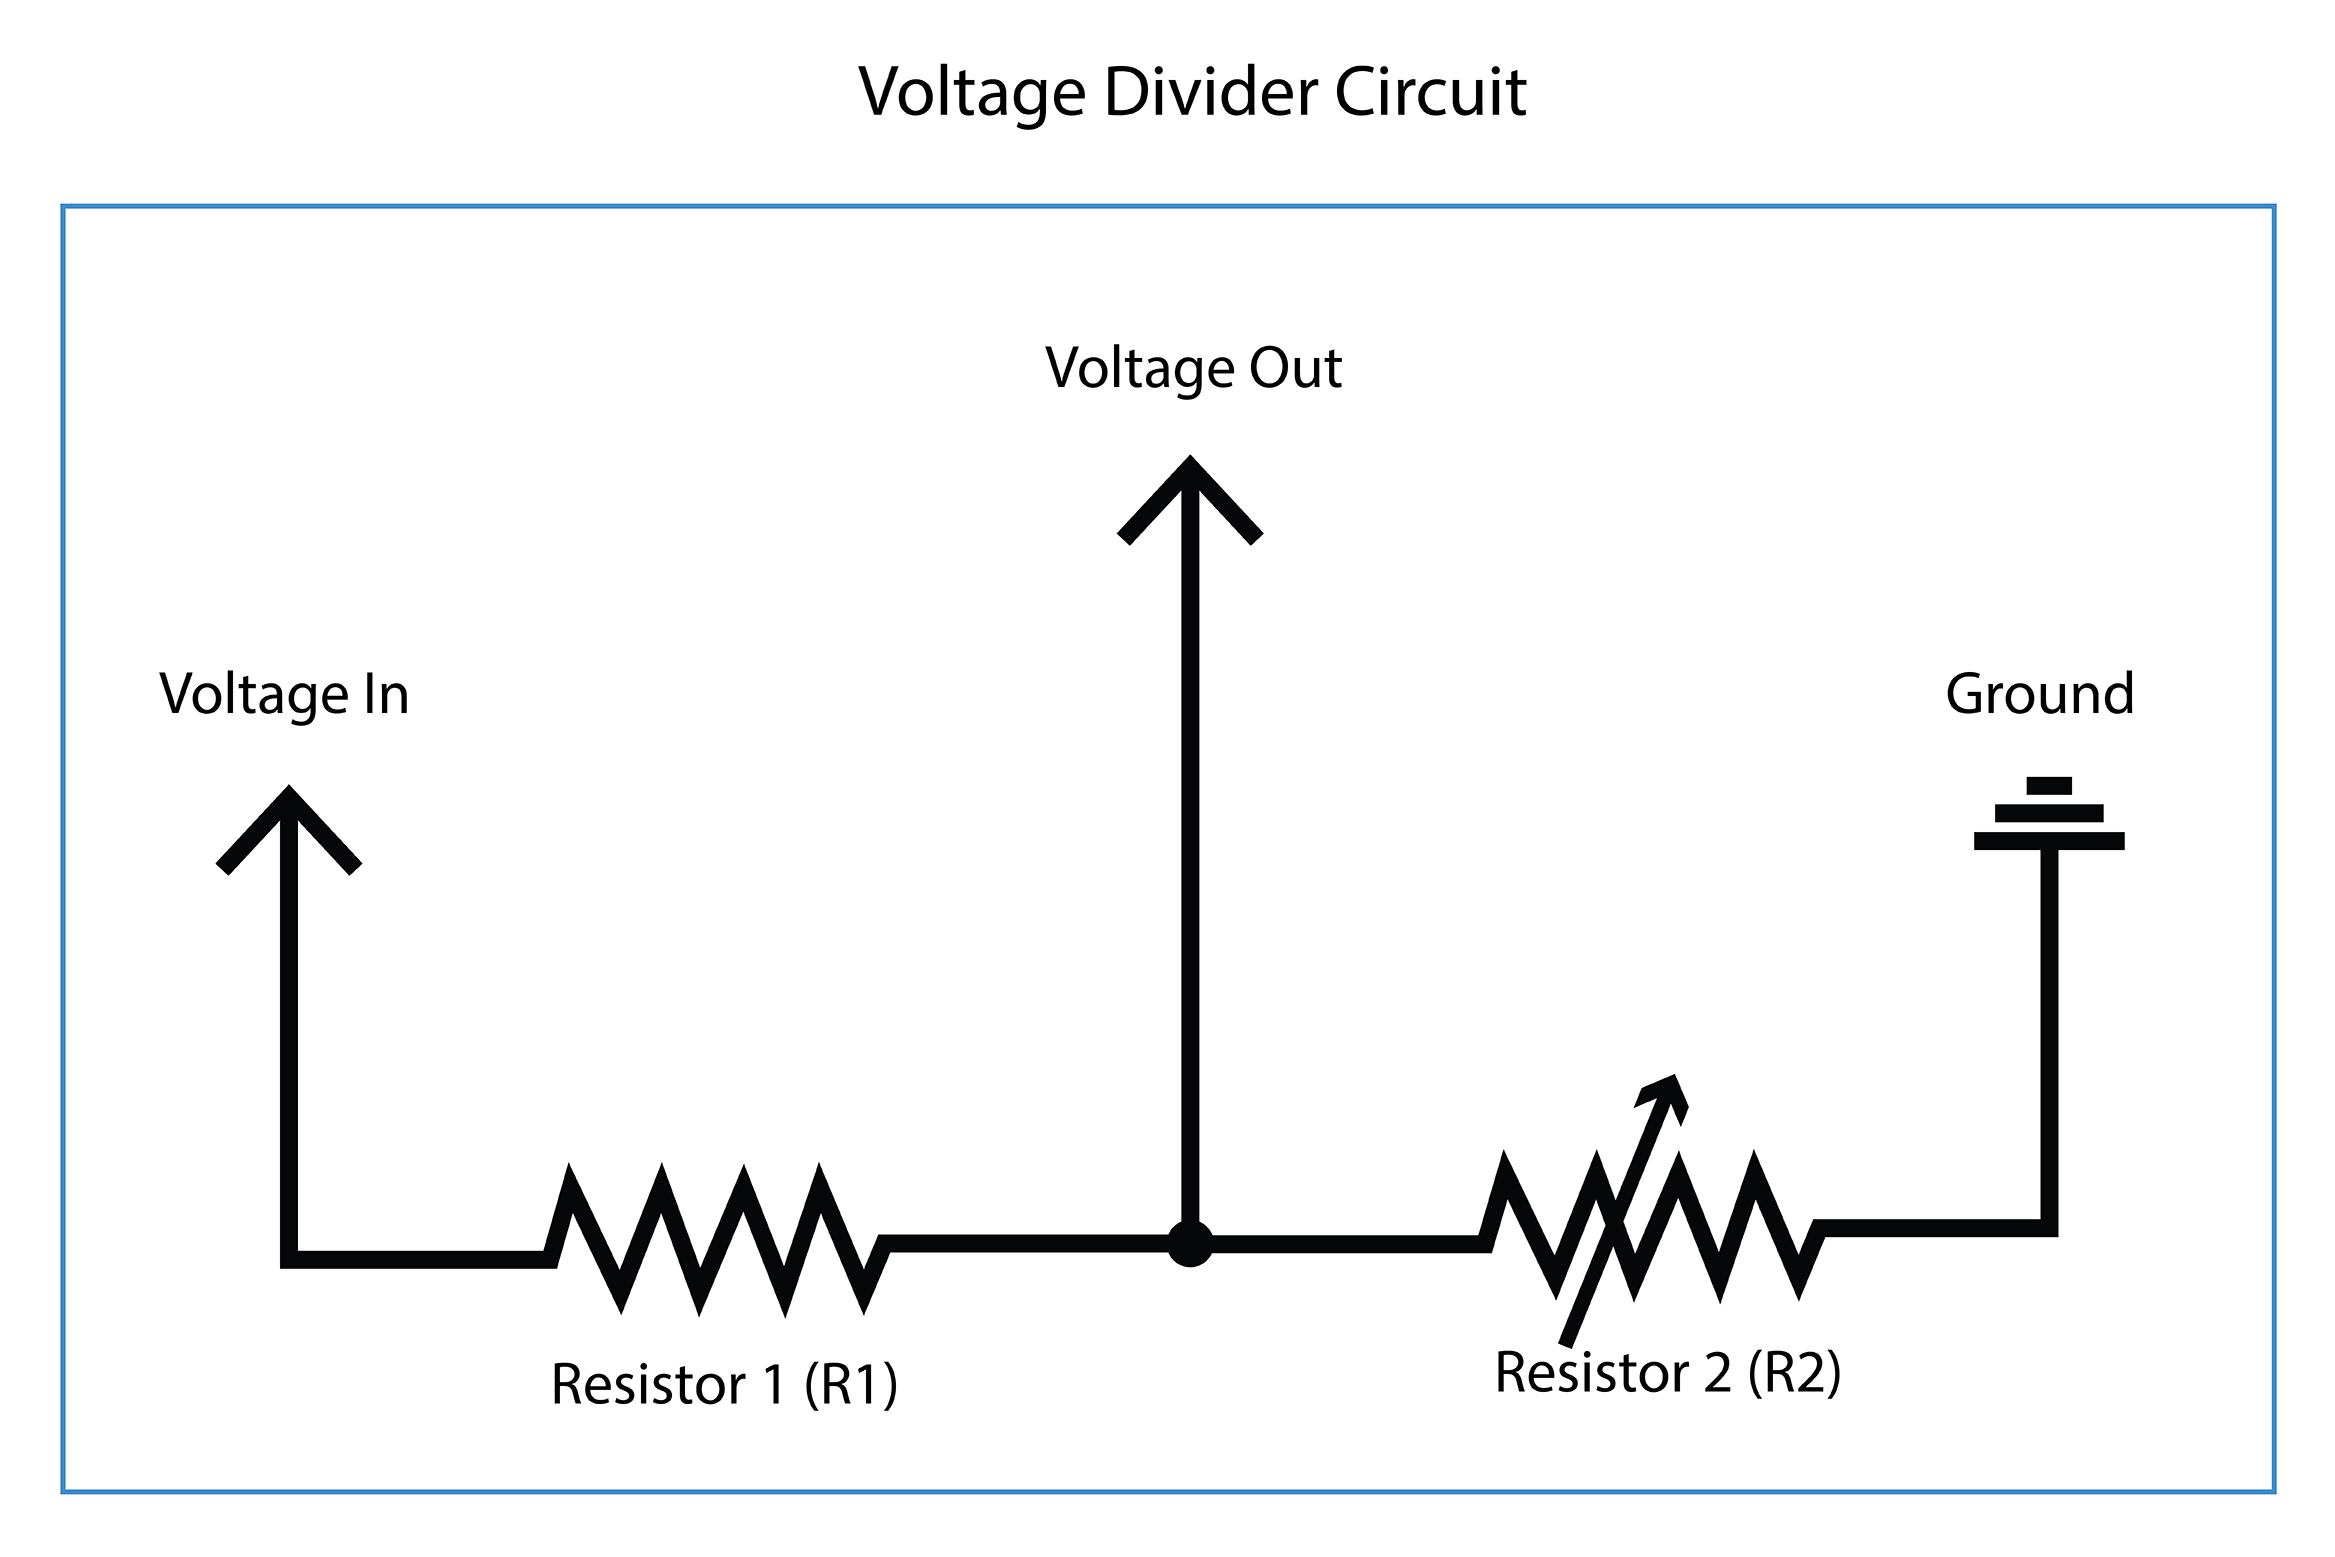 Intro To Wearable Electronics Two Day Workshop At Cca Work Page Resistor That Allows You Control And Vary The Resistance It Value Of Fixed R1 In Circuit Is Important Because Will Determine Range Voltage Coming Out From Point